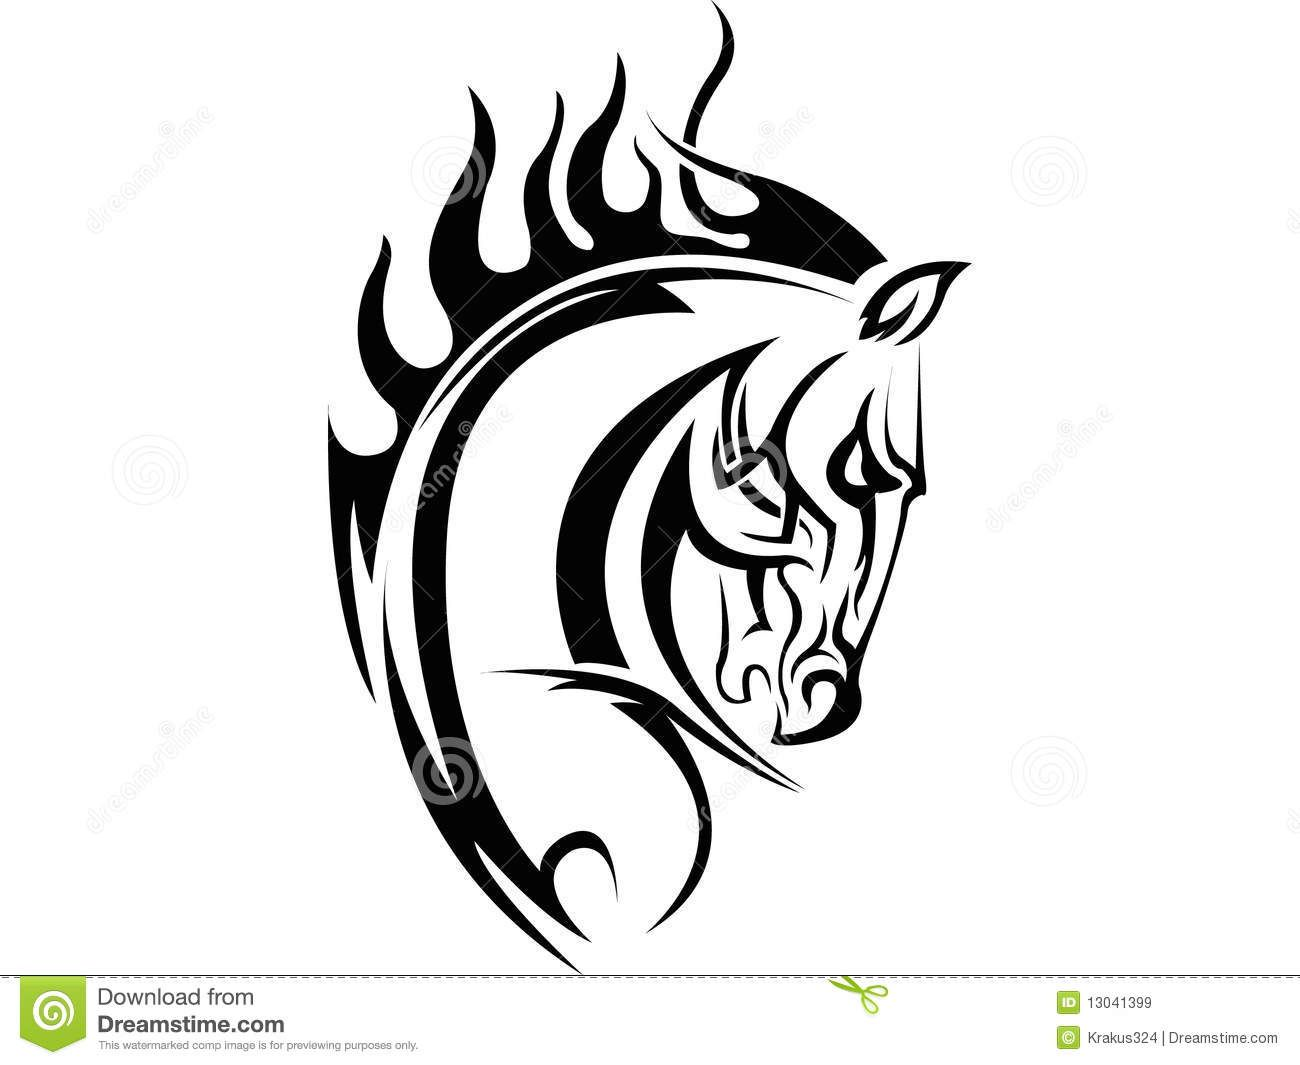 Line Quality In Art : Horse tattoo download from over 30 million high quality stock